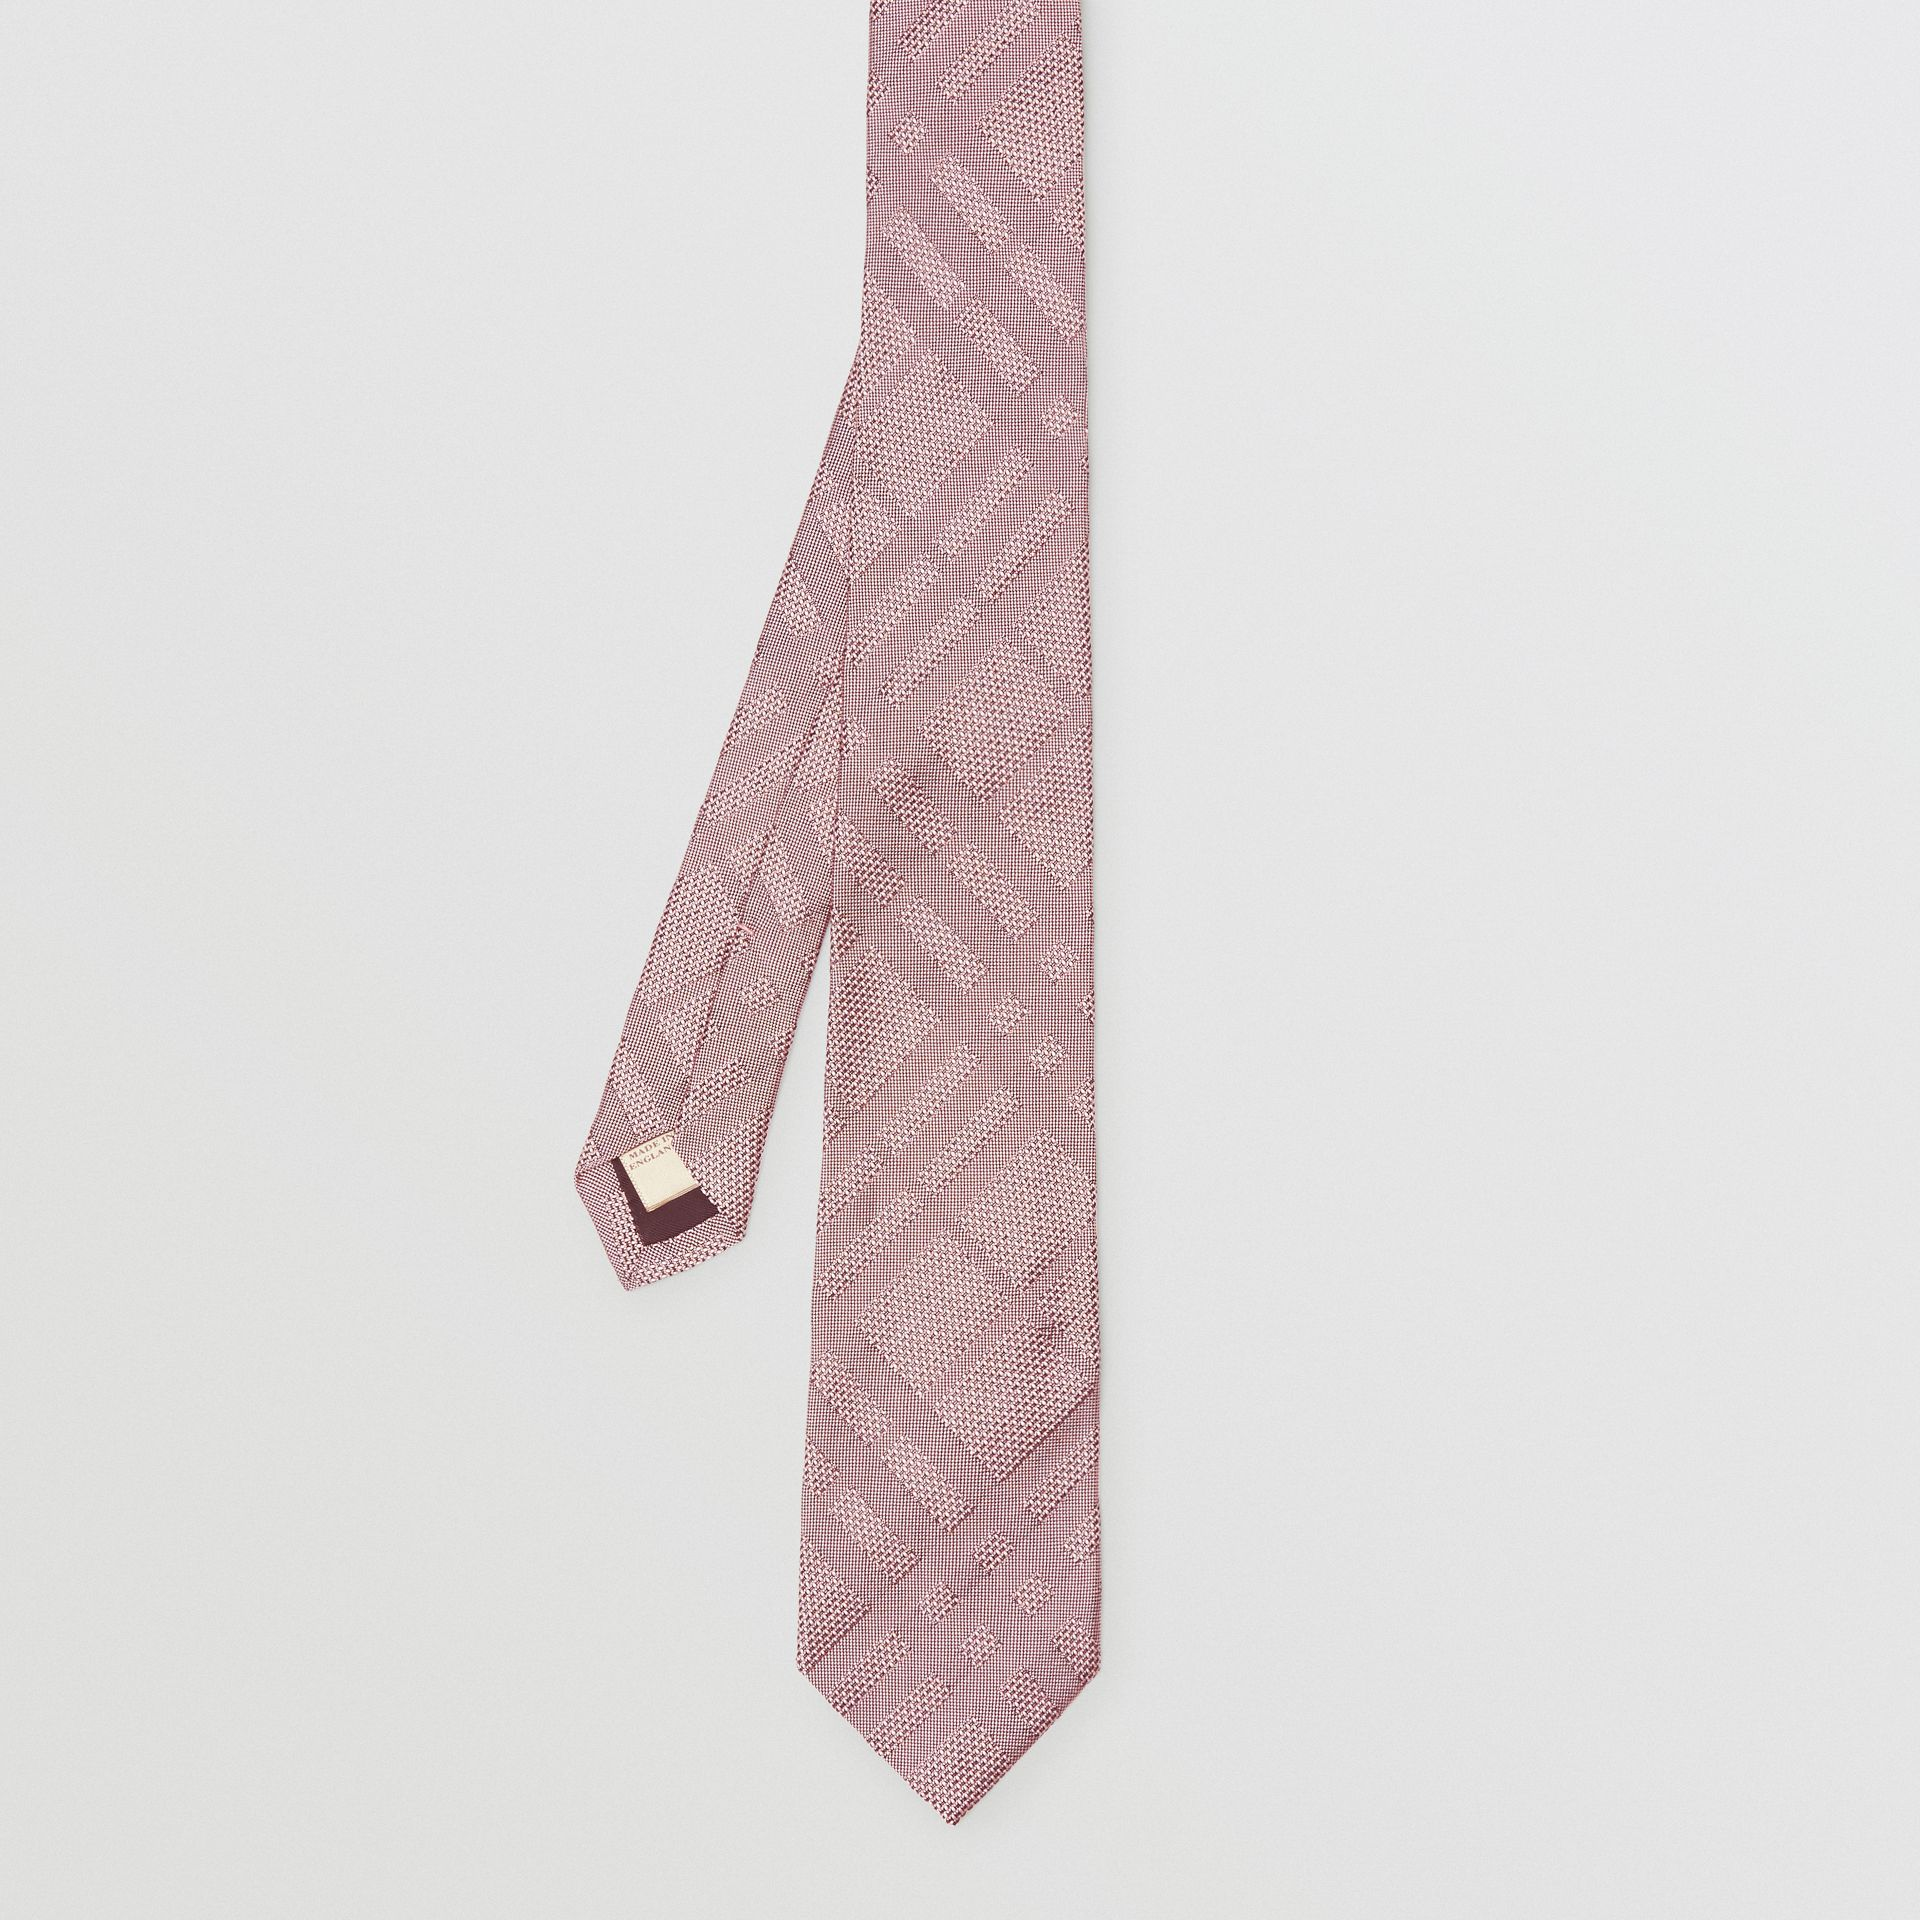 Modern Cut Check Silk Jacquard Tie in Alabaster Pink - Men | Burberry Hong Kong - gallery image 4